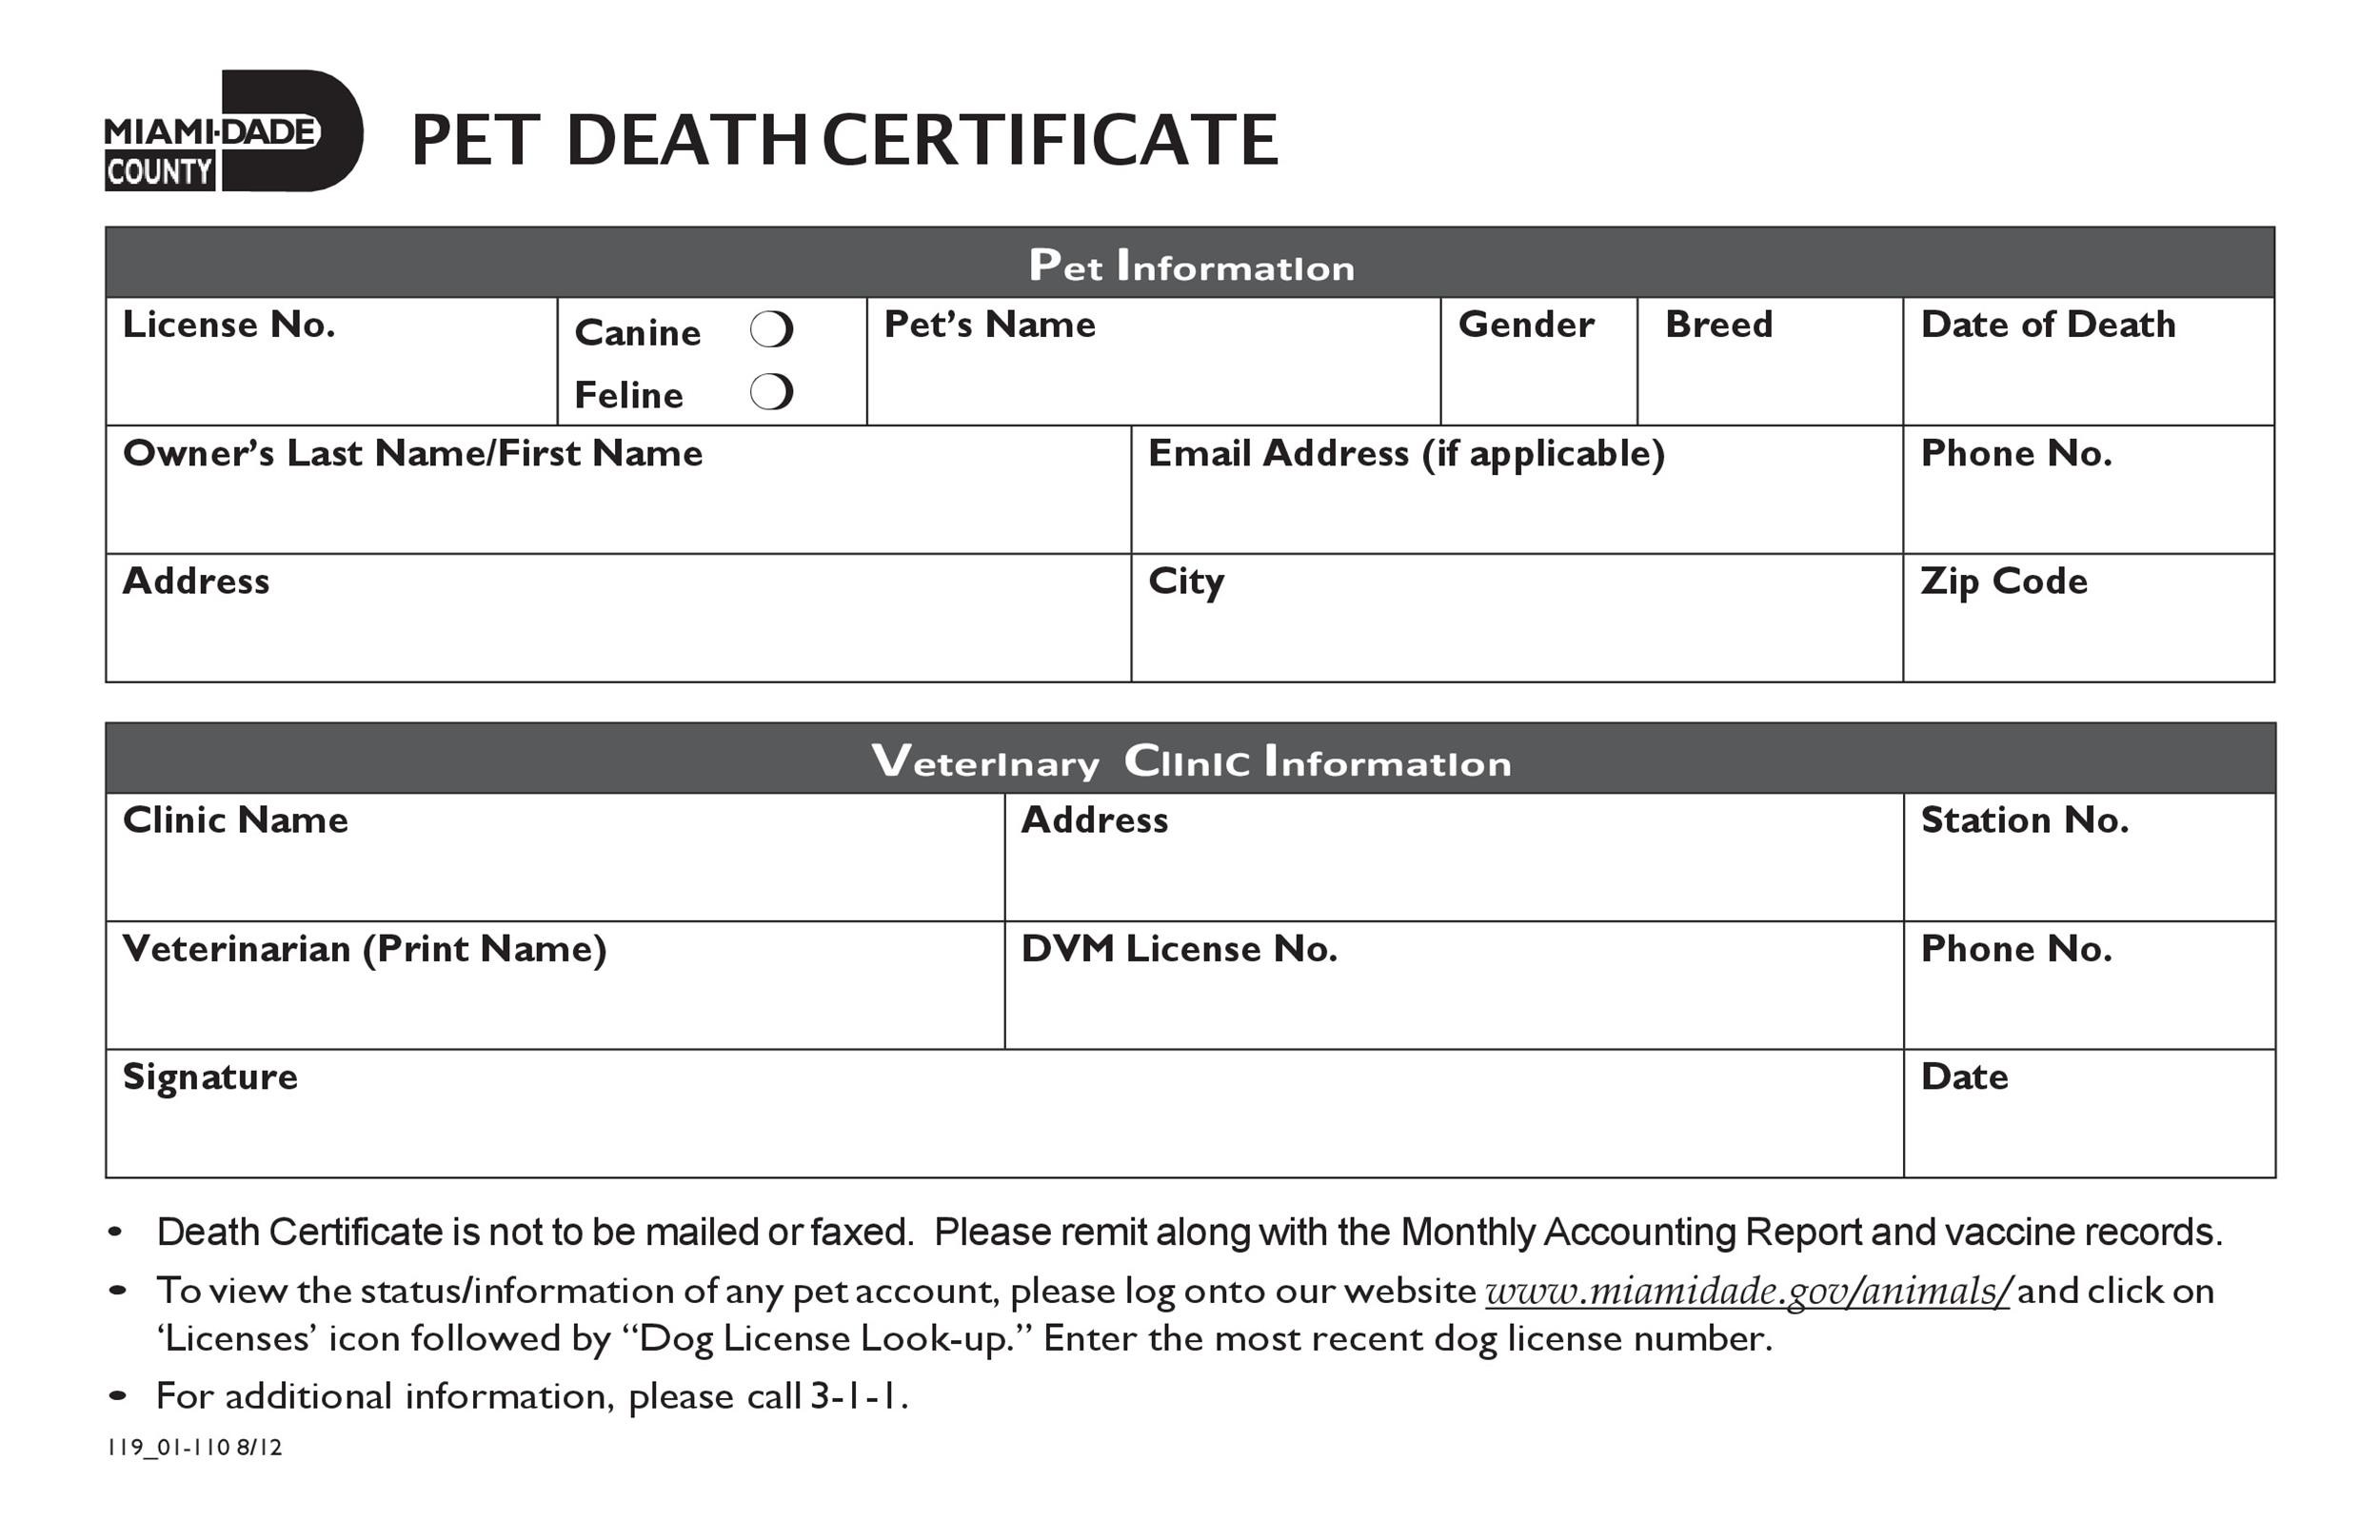 37 Blank Death Certificate Templates 100 FREE ᐅ Template Lab